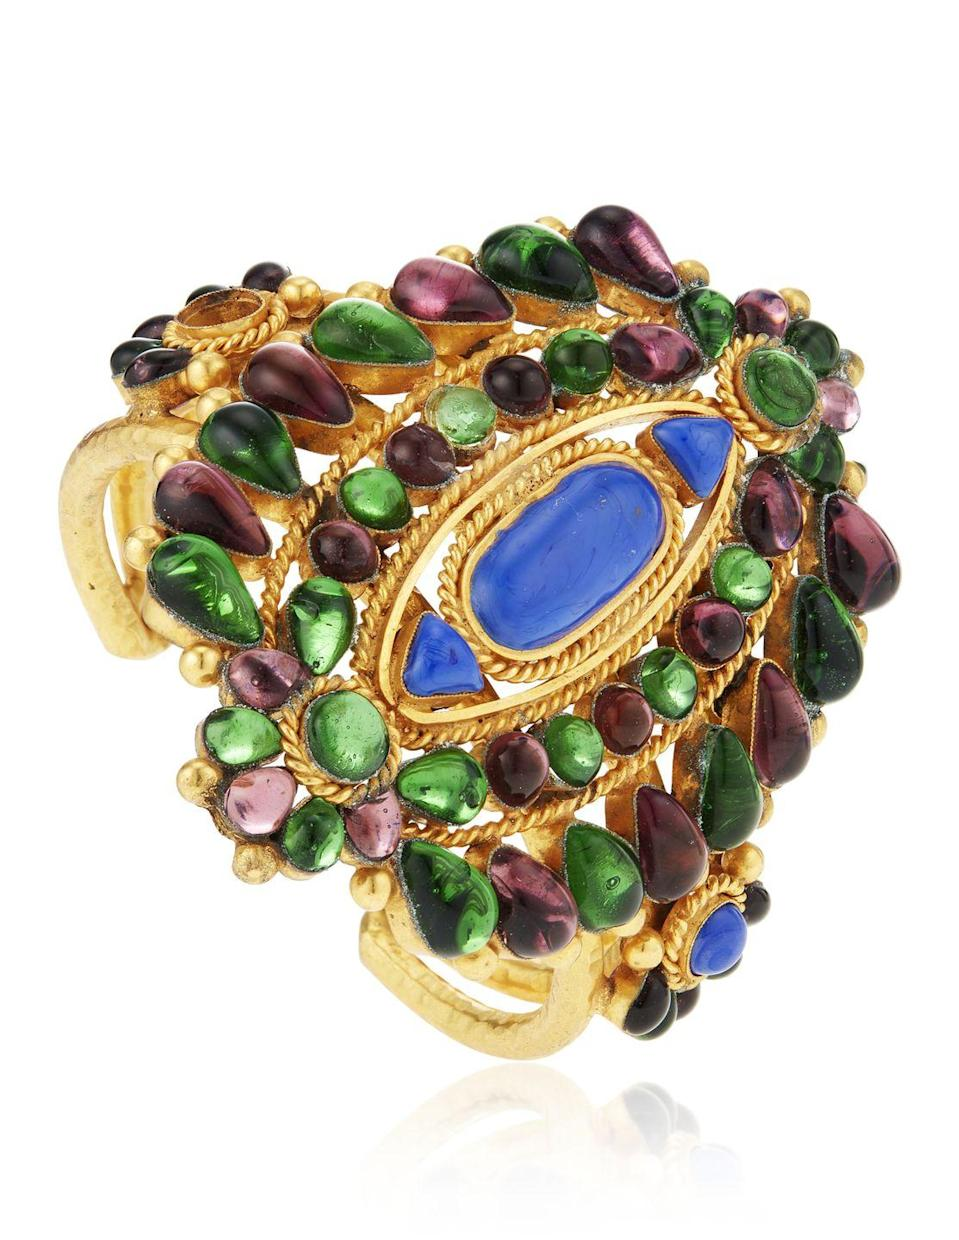 <p>This beautiful piece of arm candy is estimated to be worth $1,500 to $2,000.</p>